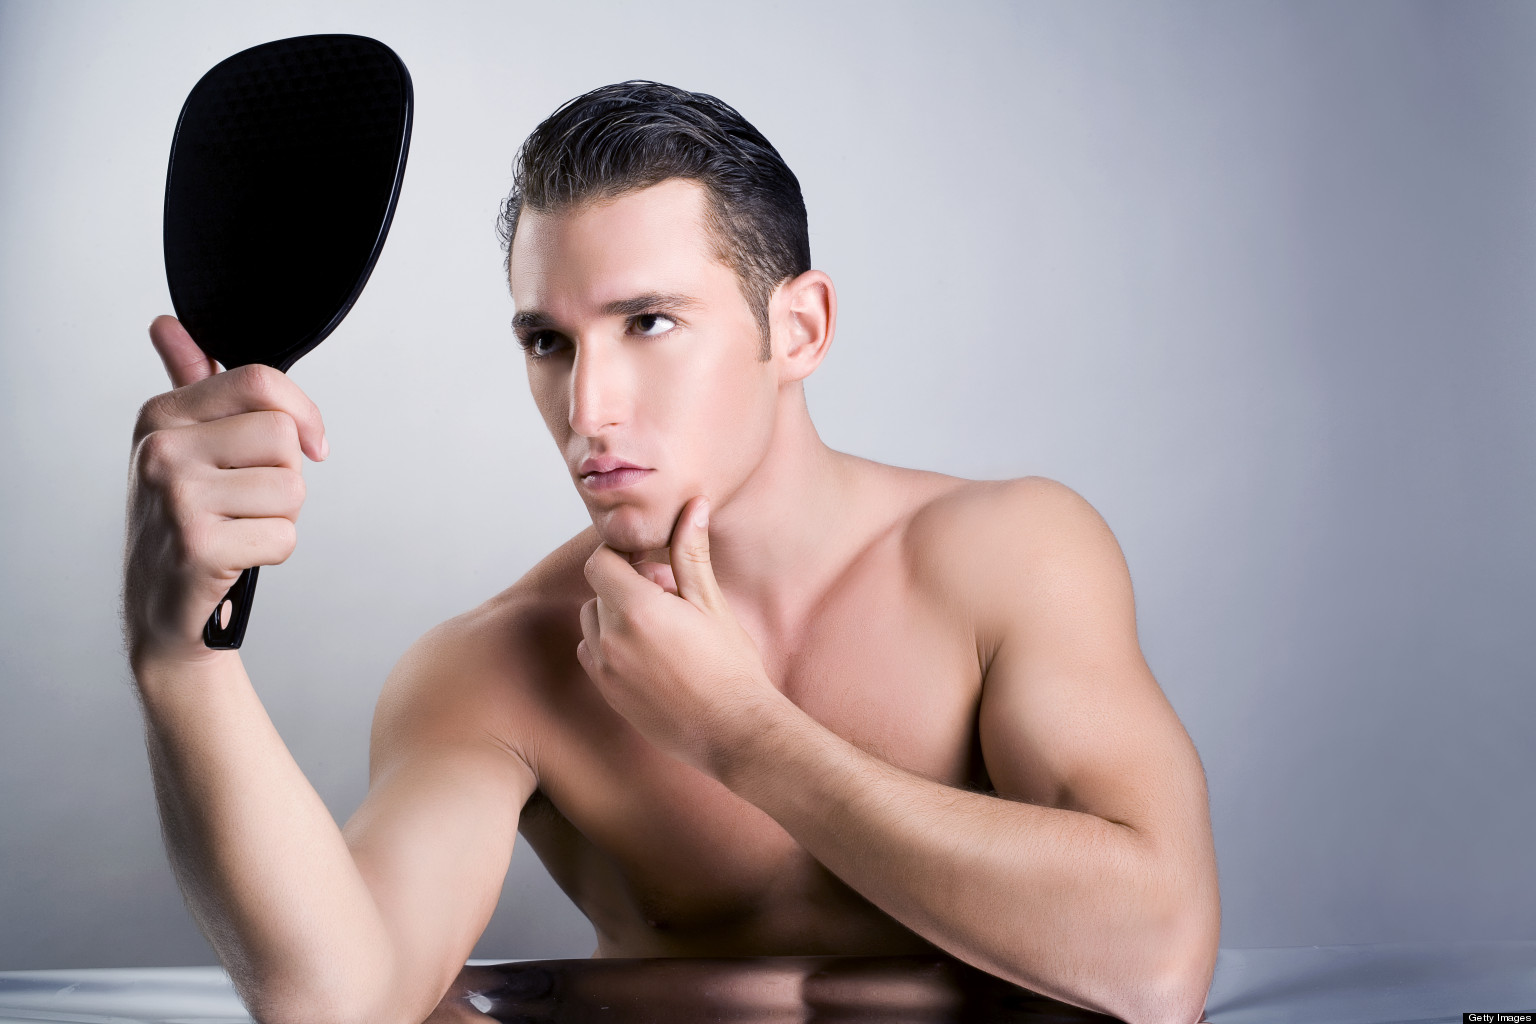 Male narcissistic personality disorder